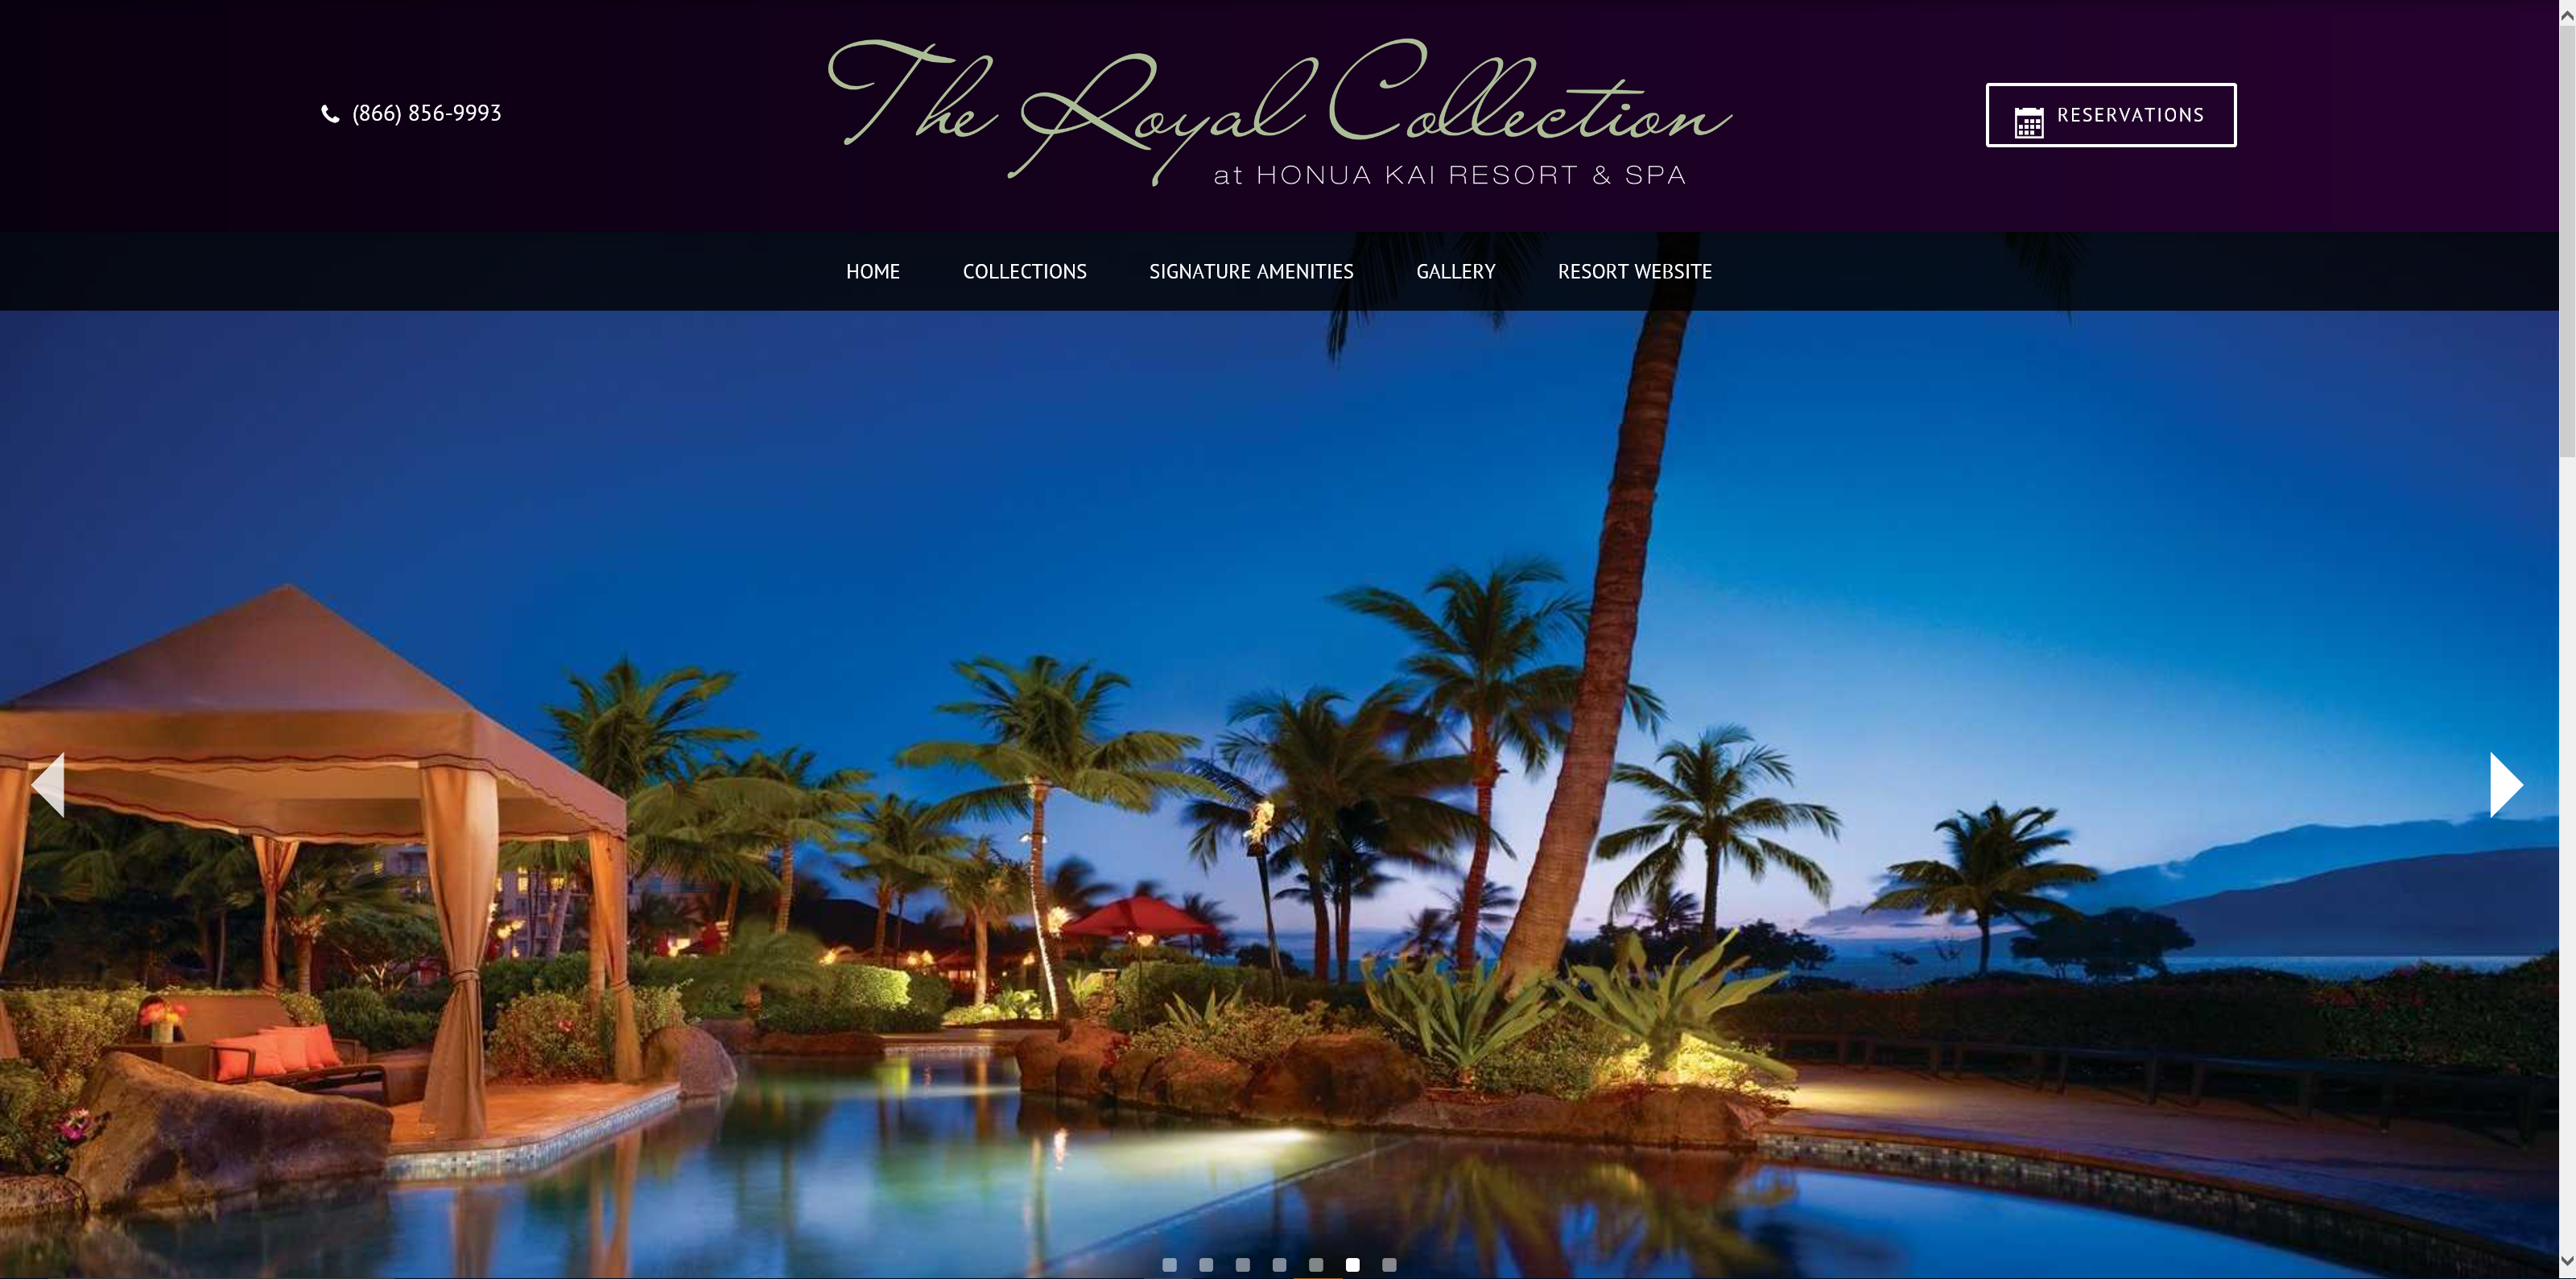 Royal Collection, Honua Kai, Maui, Hawaii, Advertising Agencies